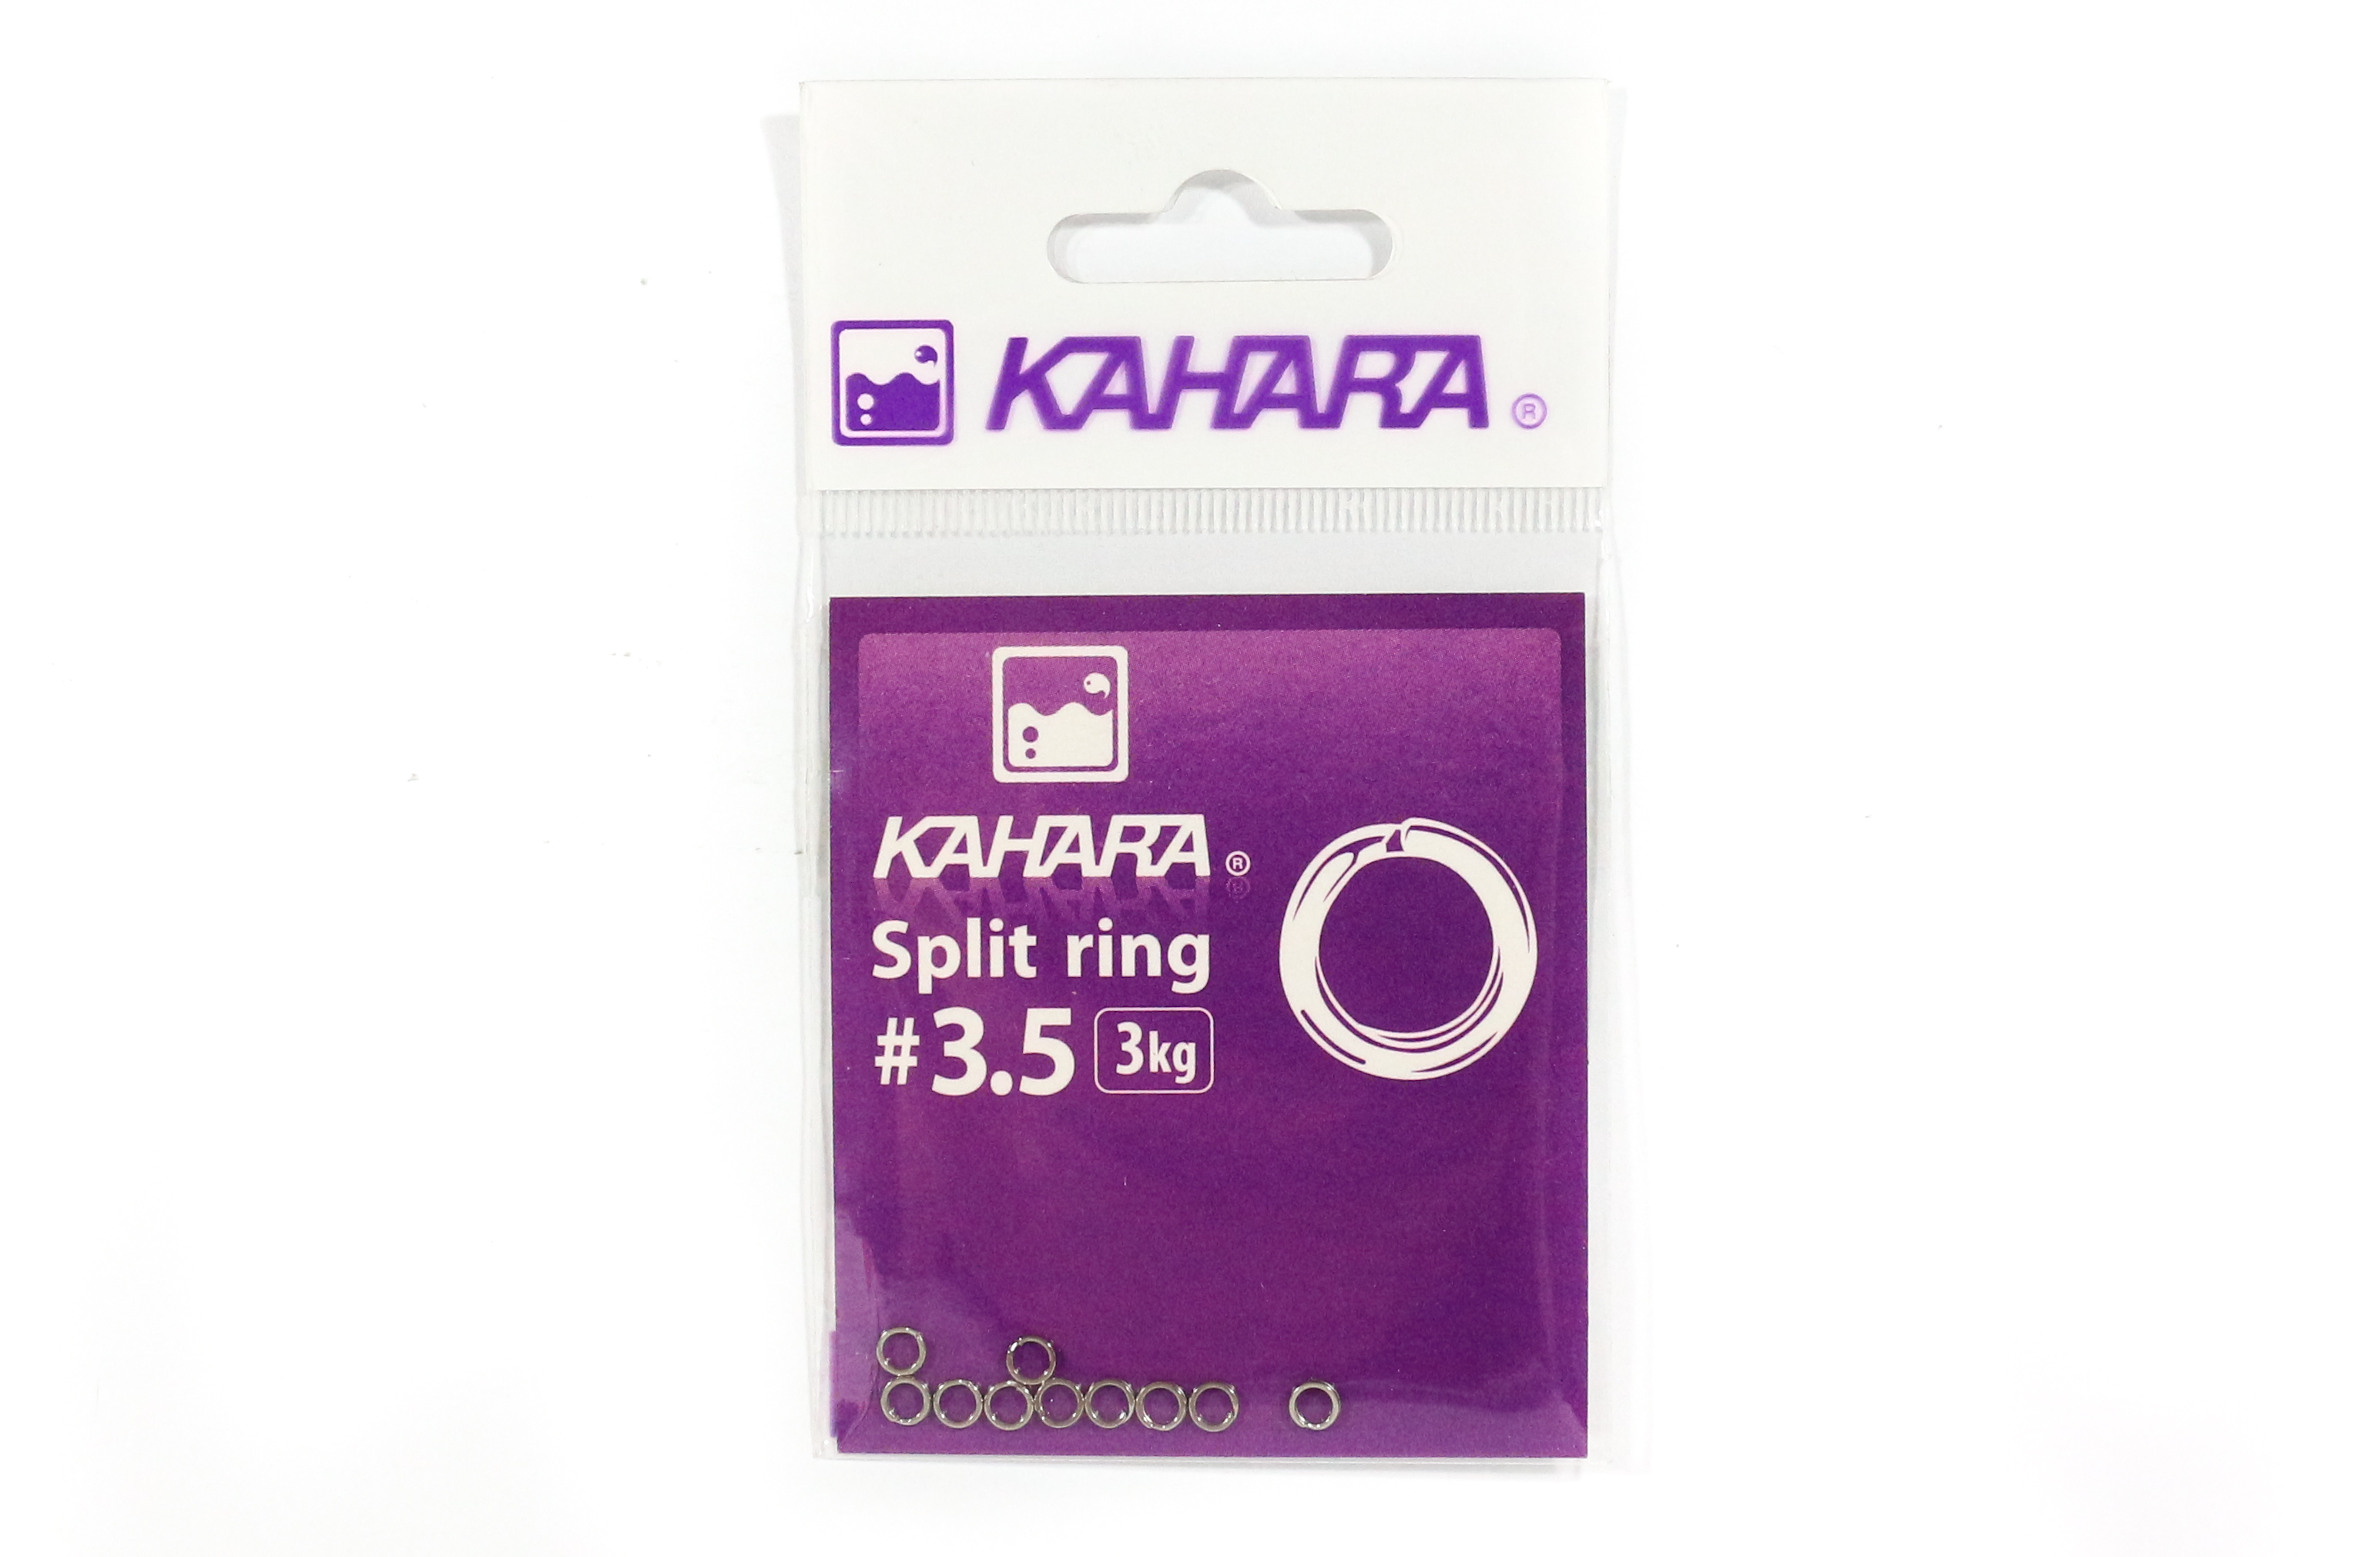 Kahara Split Ring Stainless Steel Size 3.5 (0690)